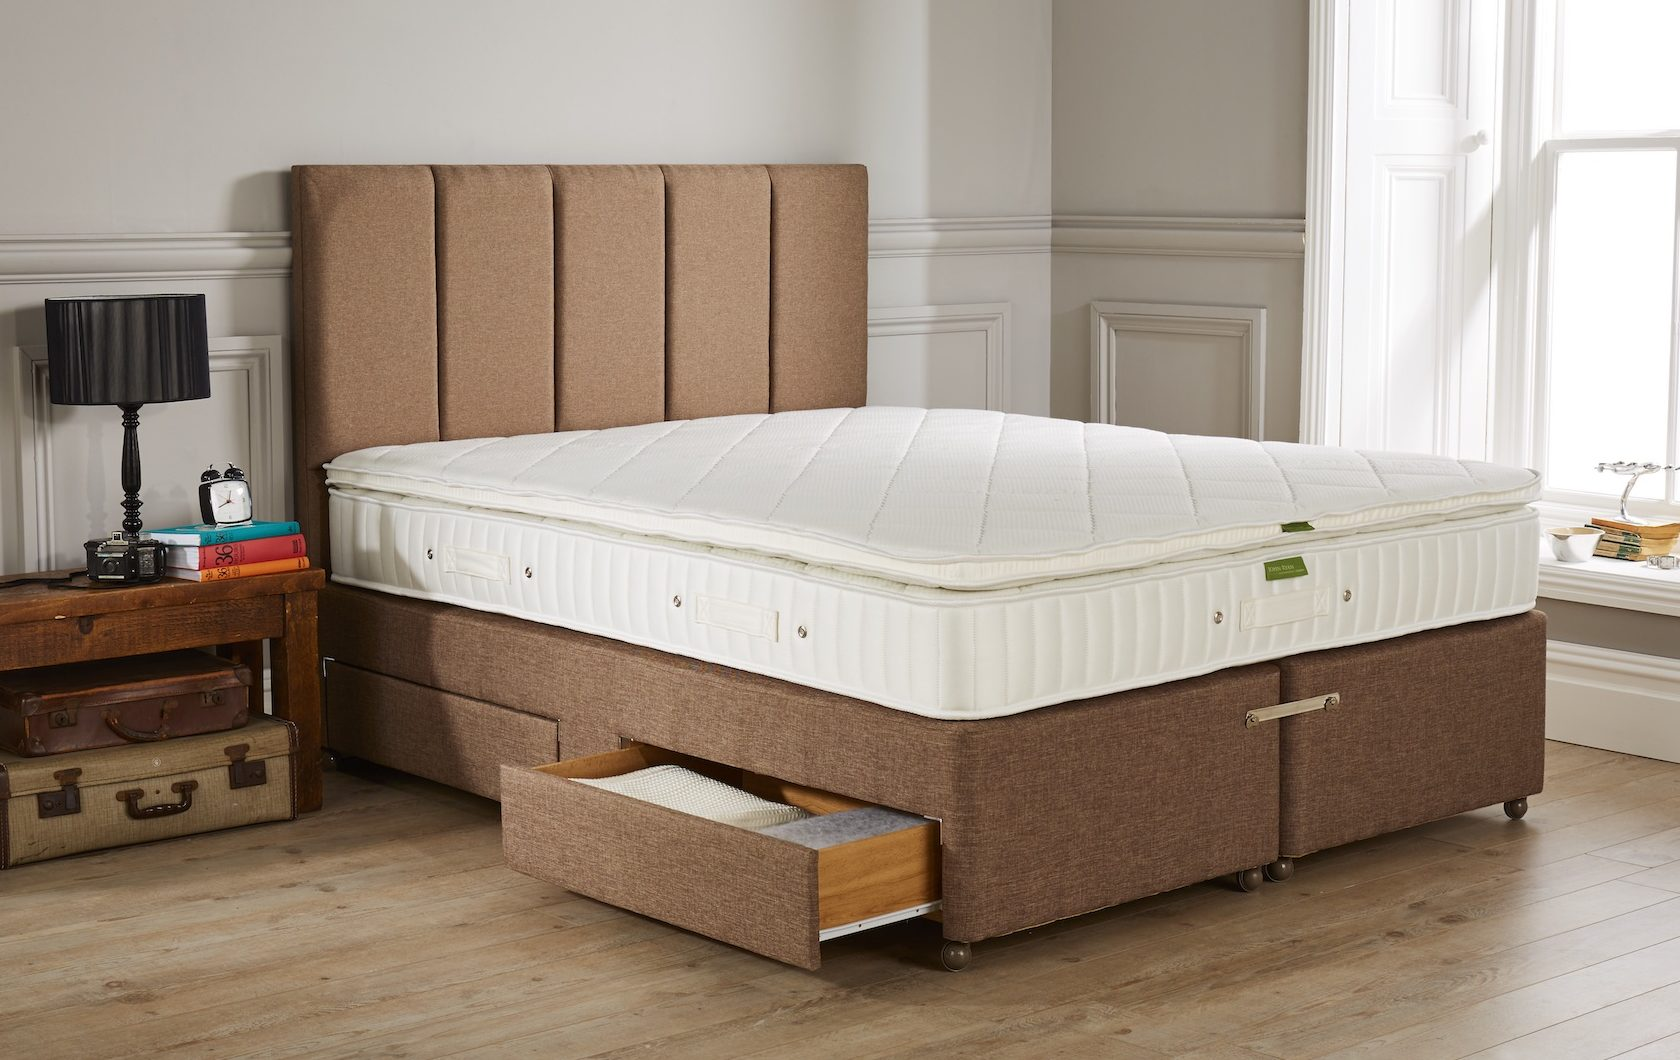 Fusion 4 mattress with Warbreck Headboard